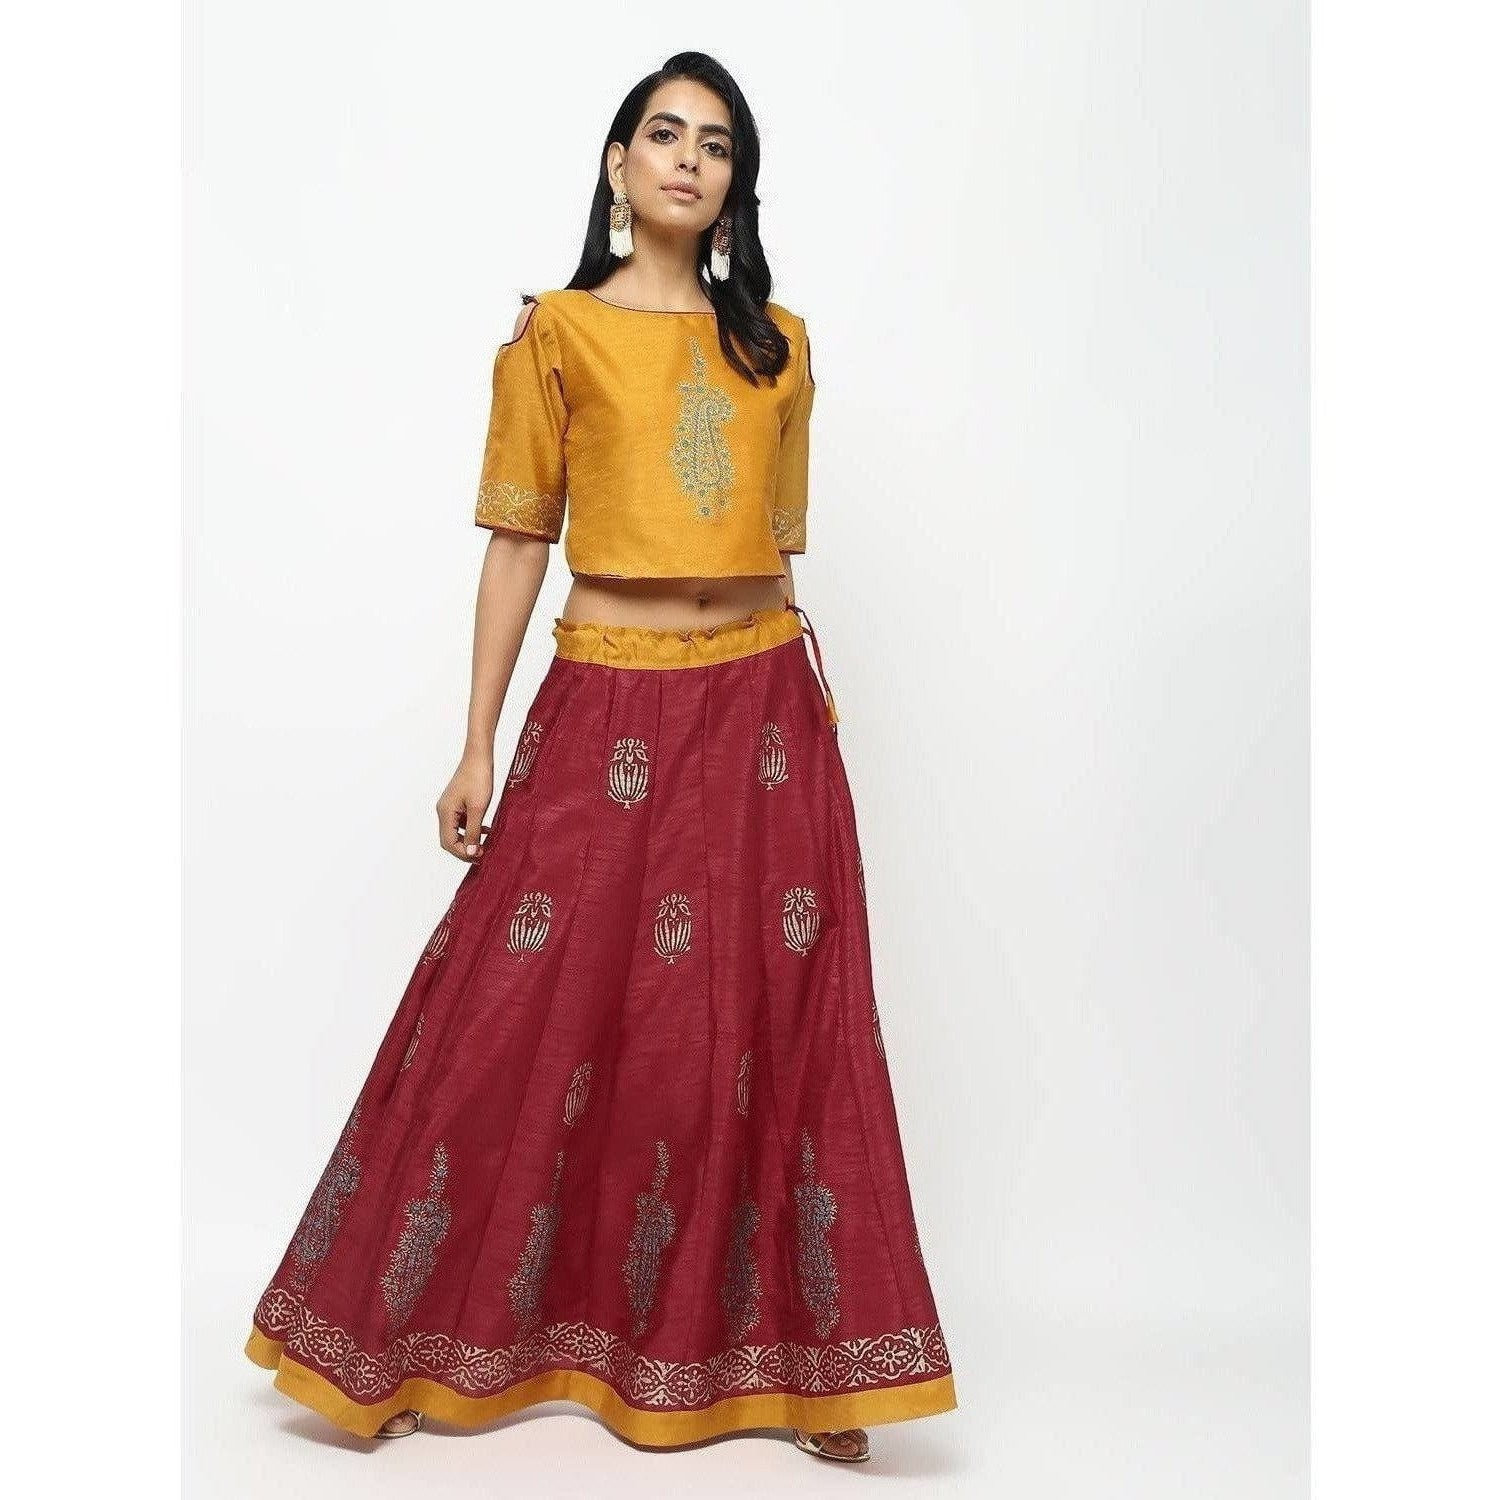 Cheera Lehenga Skirt With Beautiful Block Print And Contrast Top